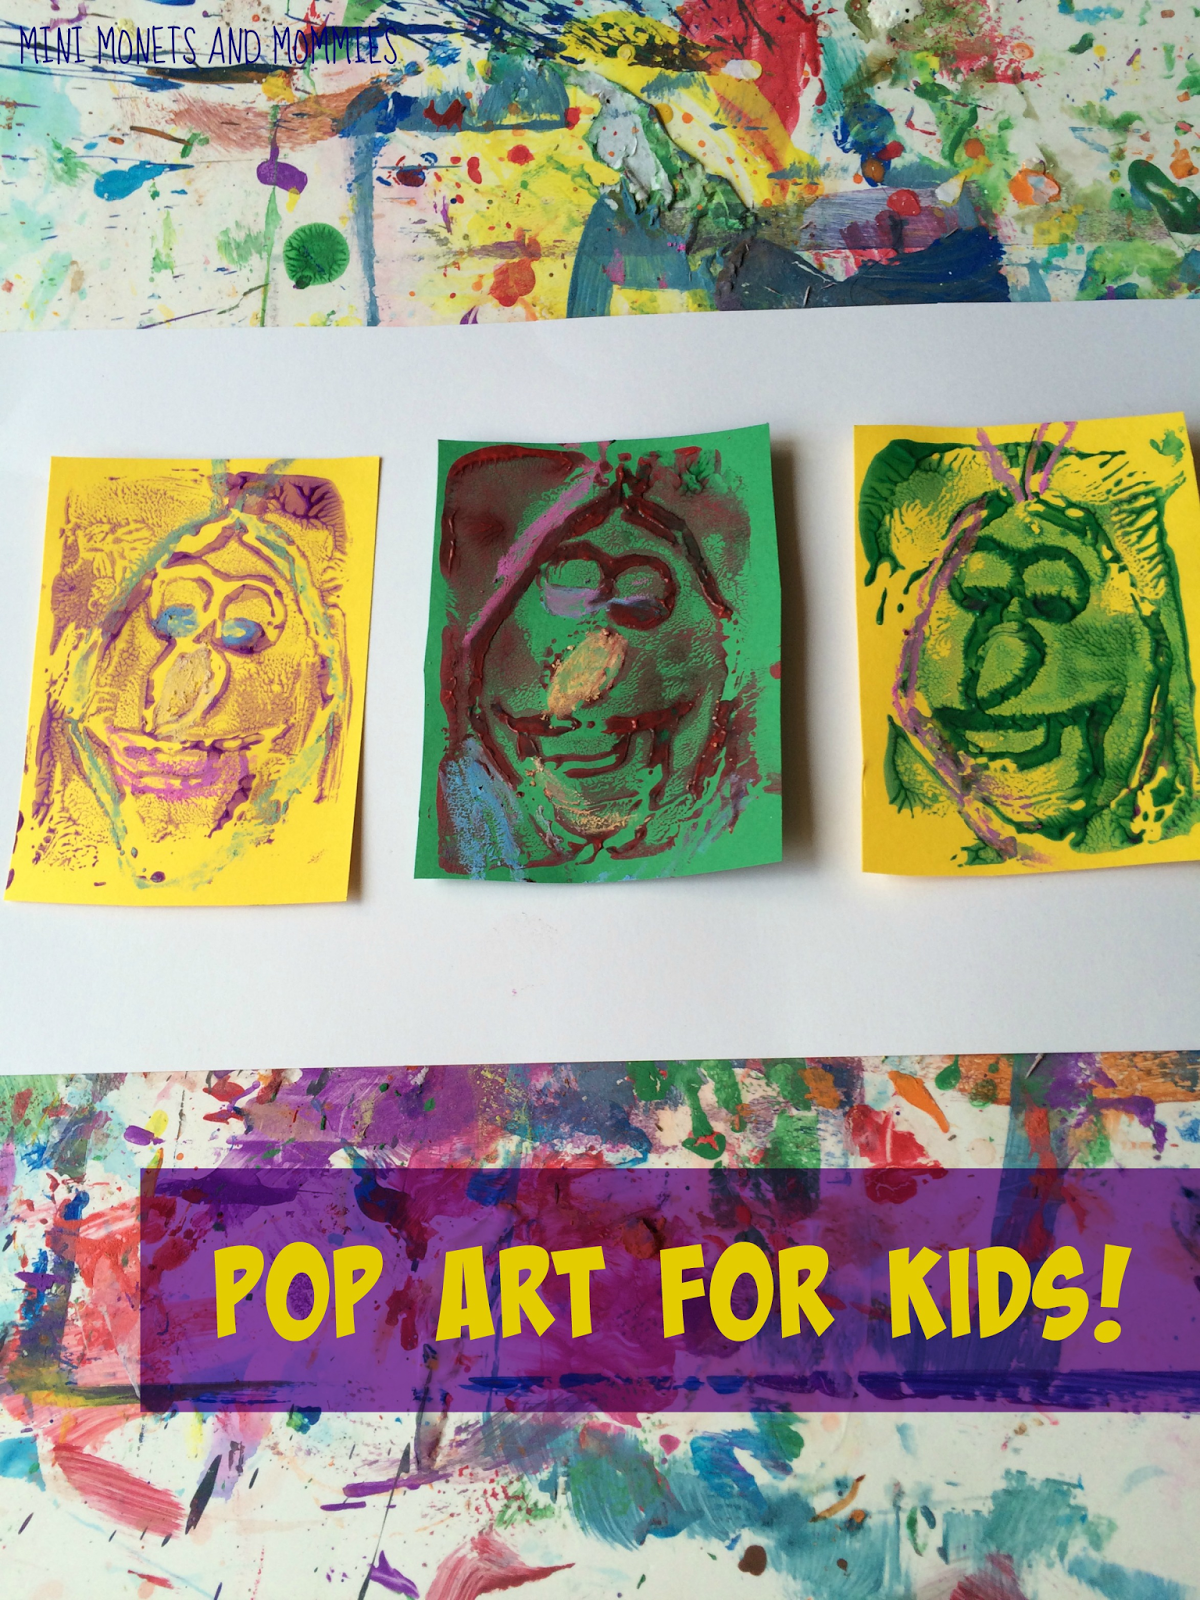 Andy Warhol PrintMaking Art Activity for Kids Pop art